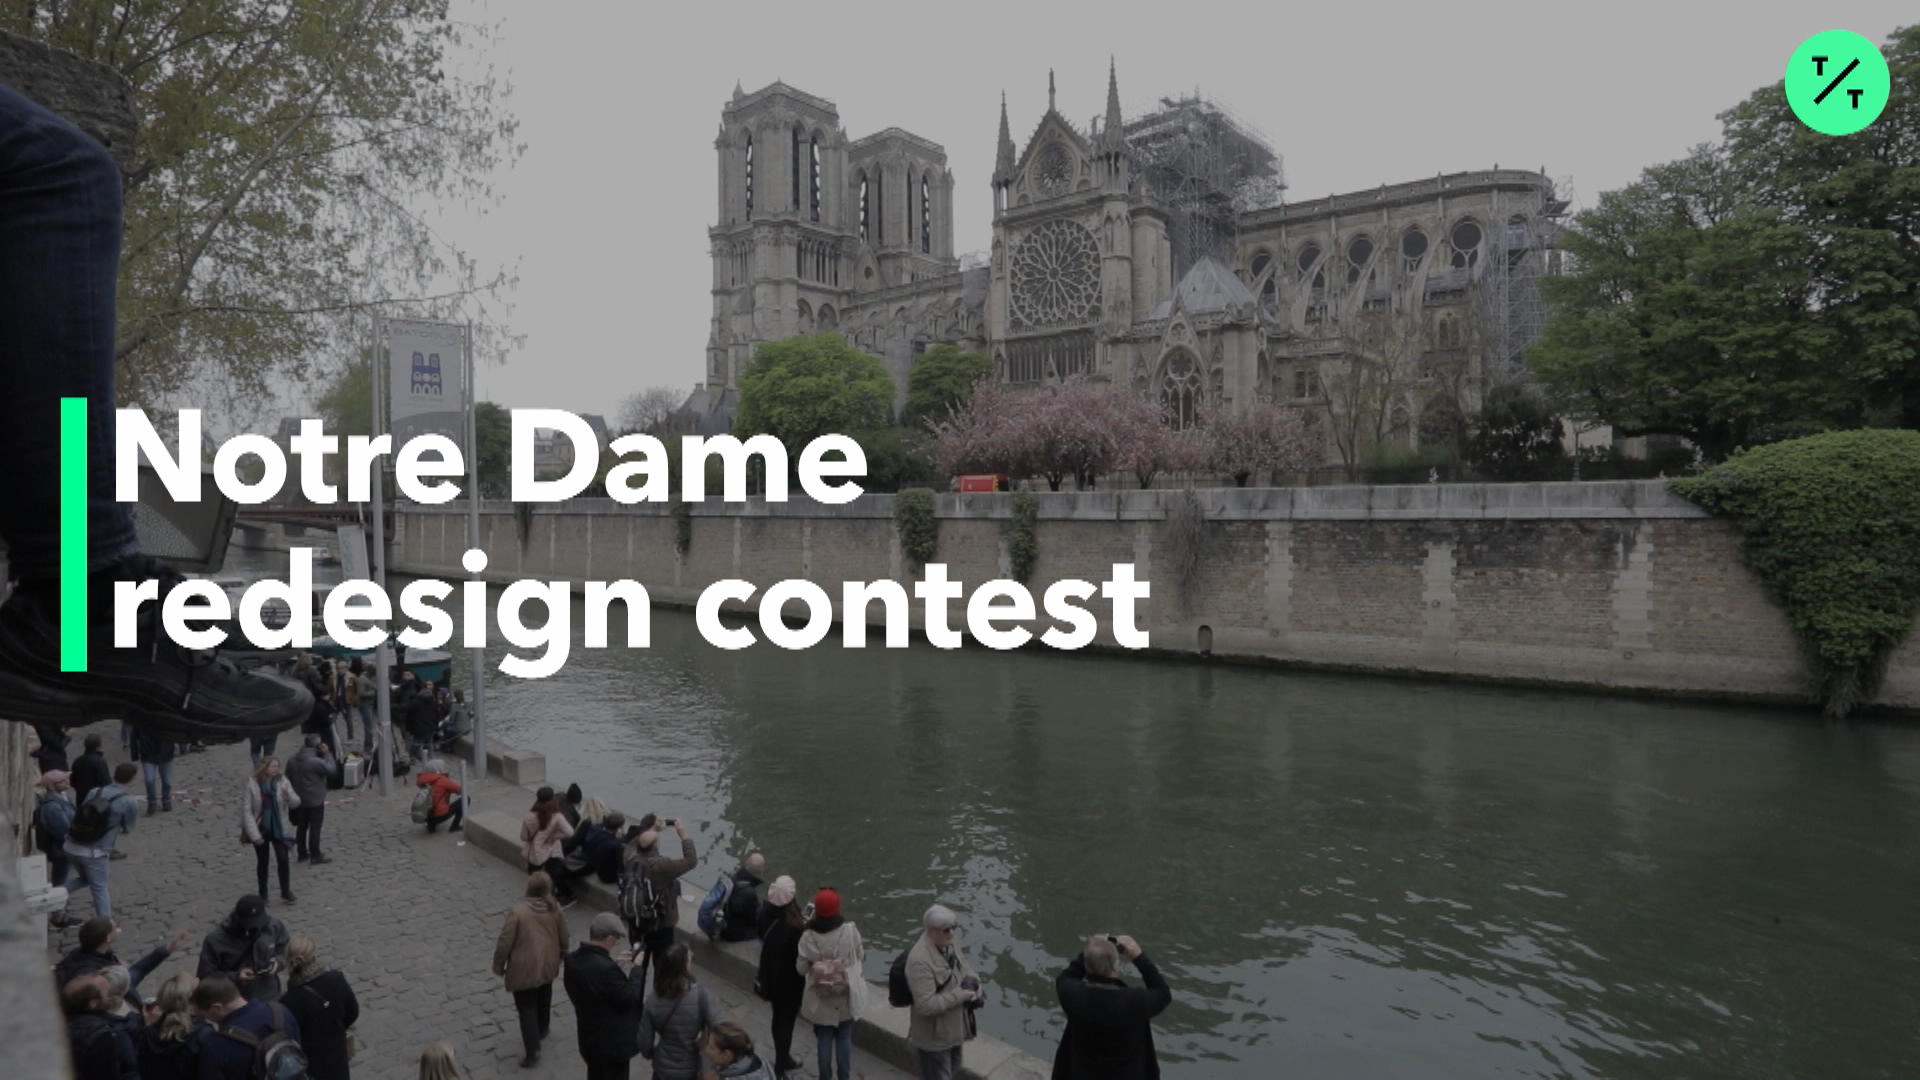 Notre Dame Holds Redesign Competition